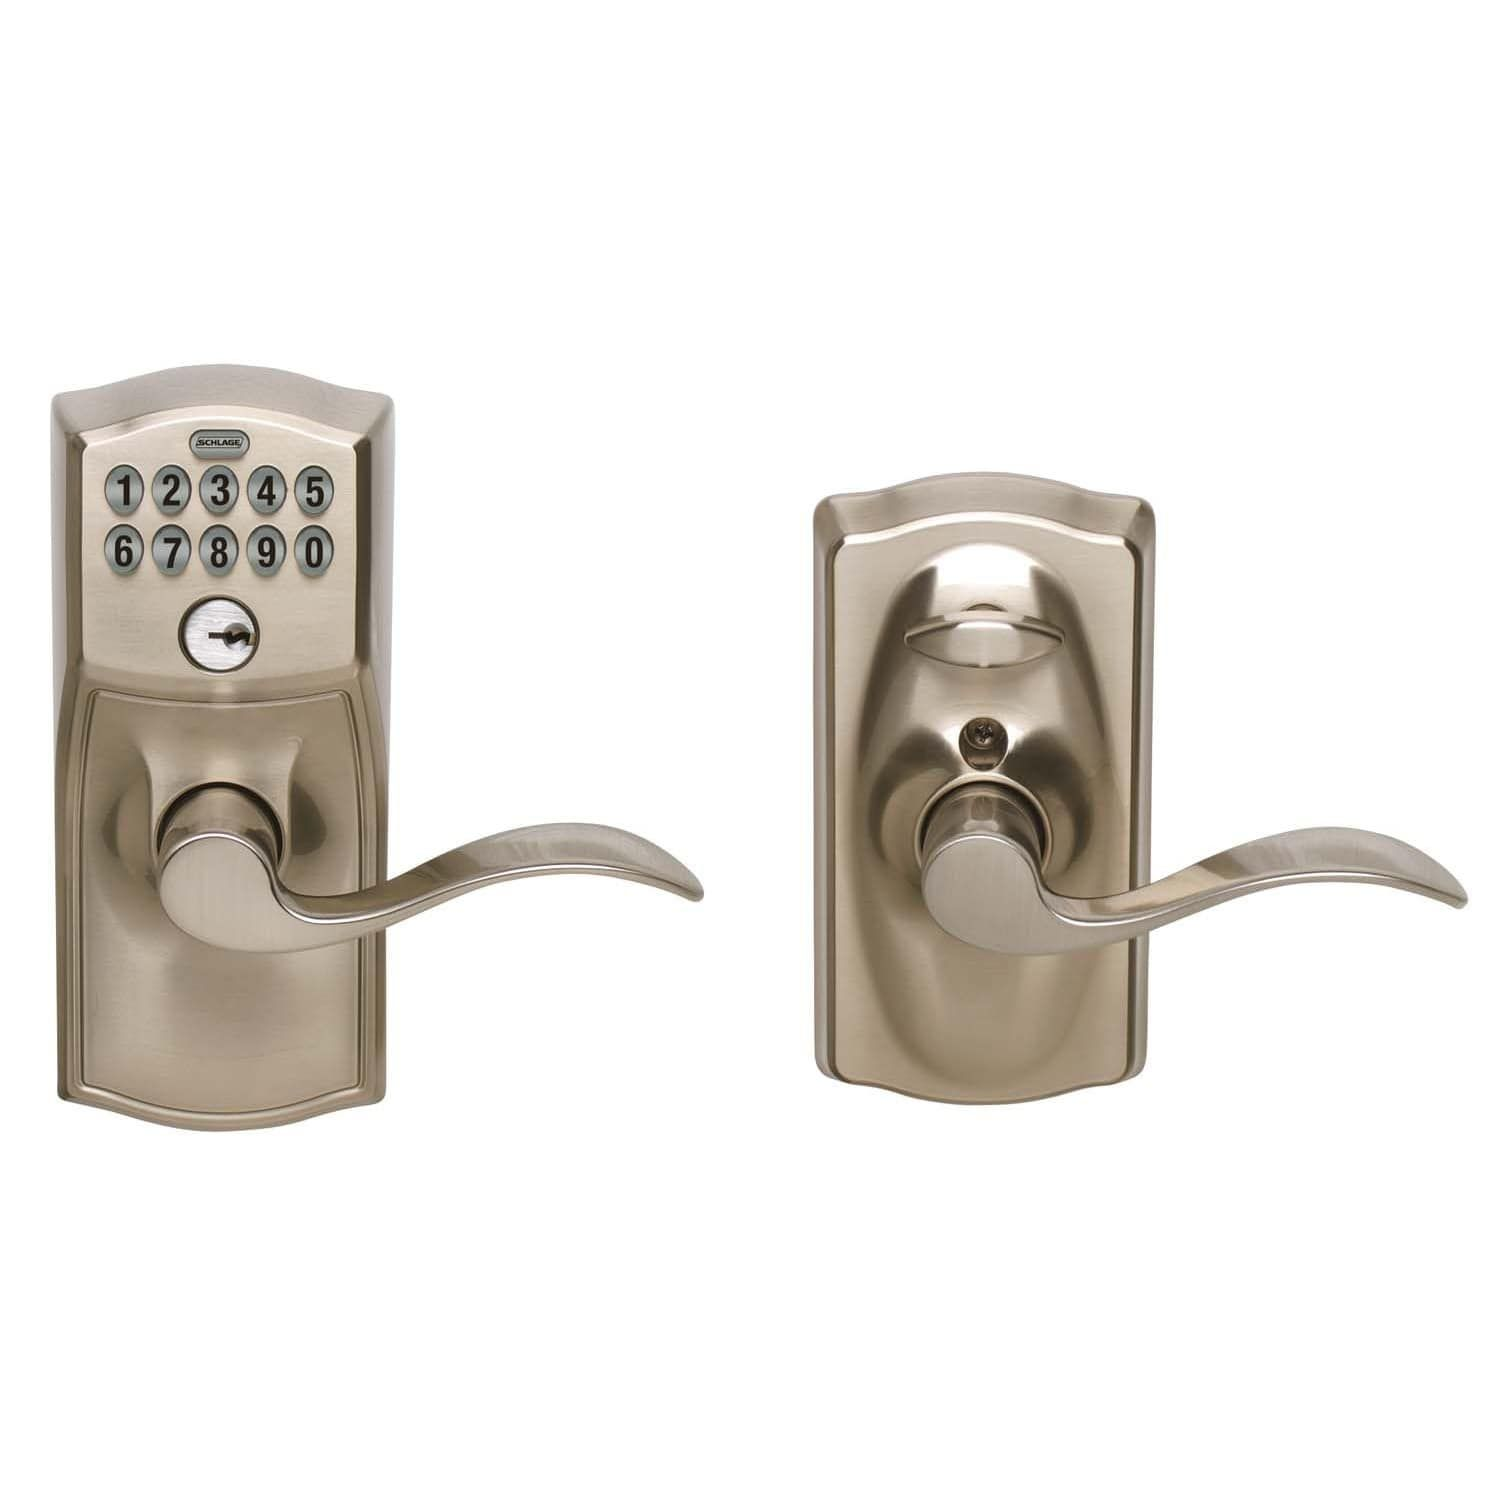 Schlage Fe595vcam619acc Satin Chrome Accent Entry Lever